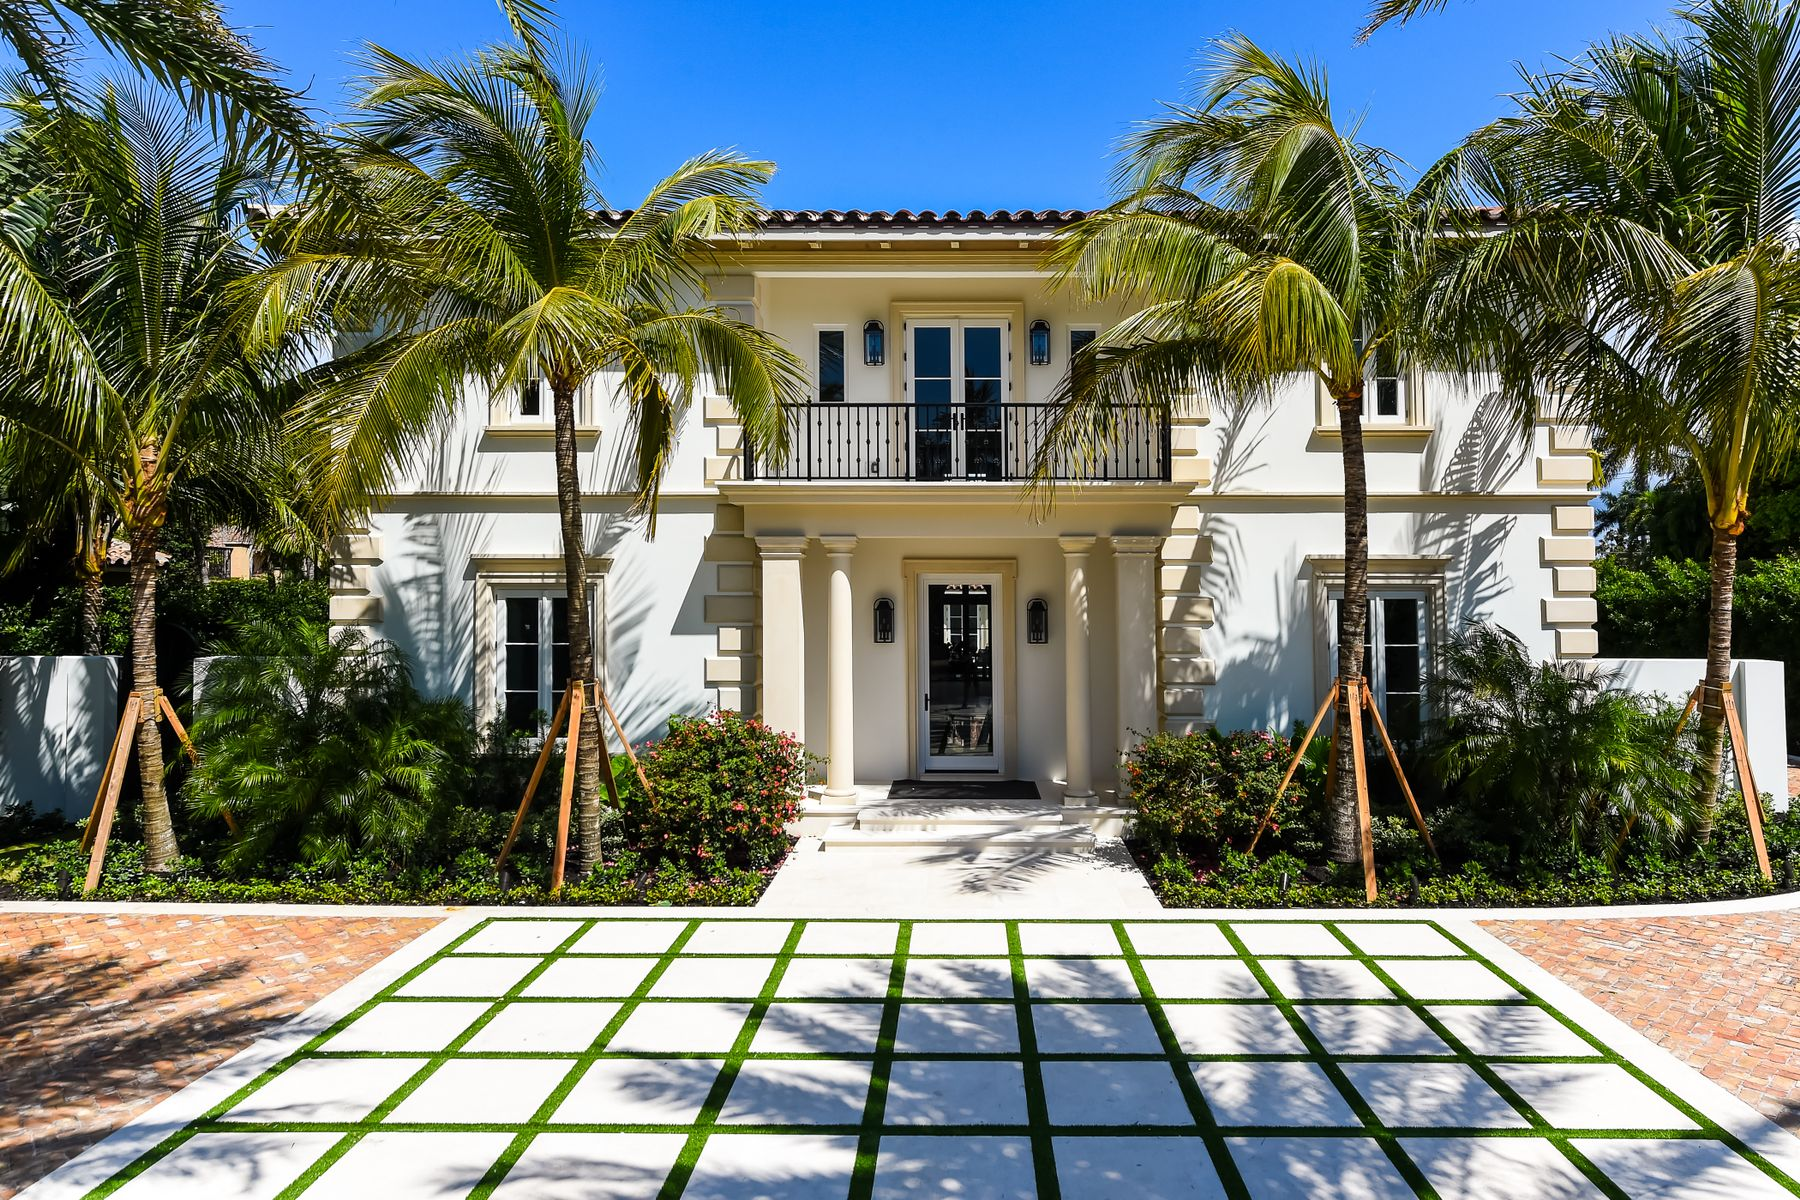 Single Family Homes for Sale at 201 Dunbar Road Palm Beach, Florida 33480 United States